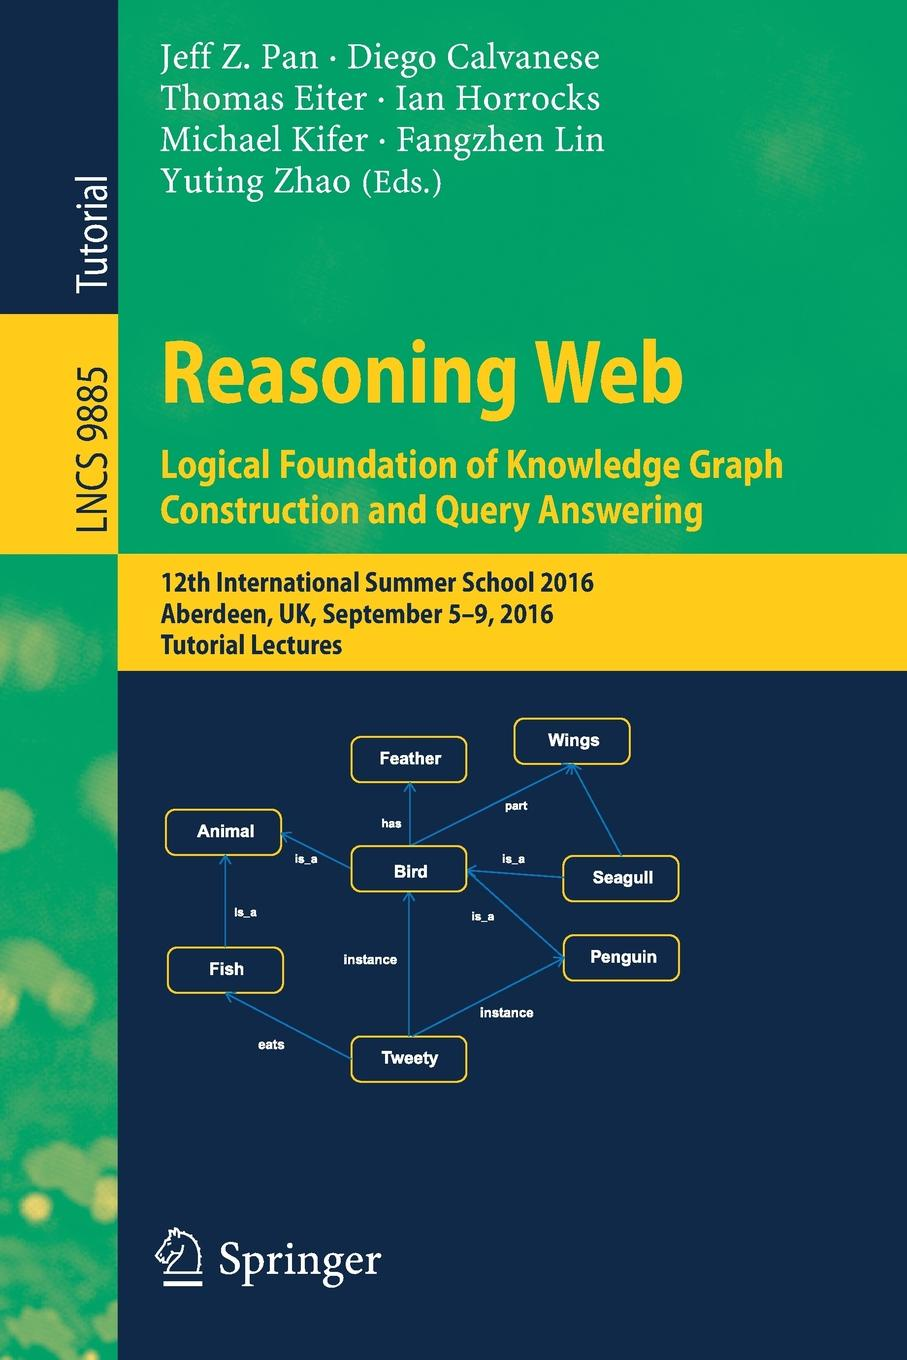 Reasoning Web. Logical Foundation of Knowledge Graph Construction and Query Answering : 12th International Summer School 2016, Aberdeen, UK, September 5-9, 2016, Tutorial Lectures foundation web design